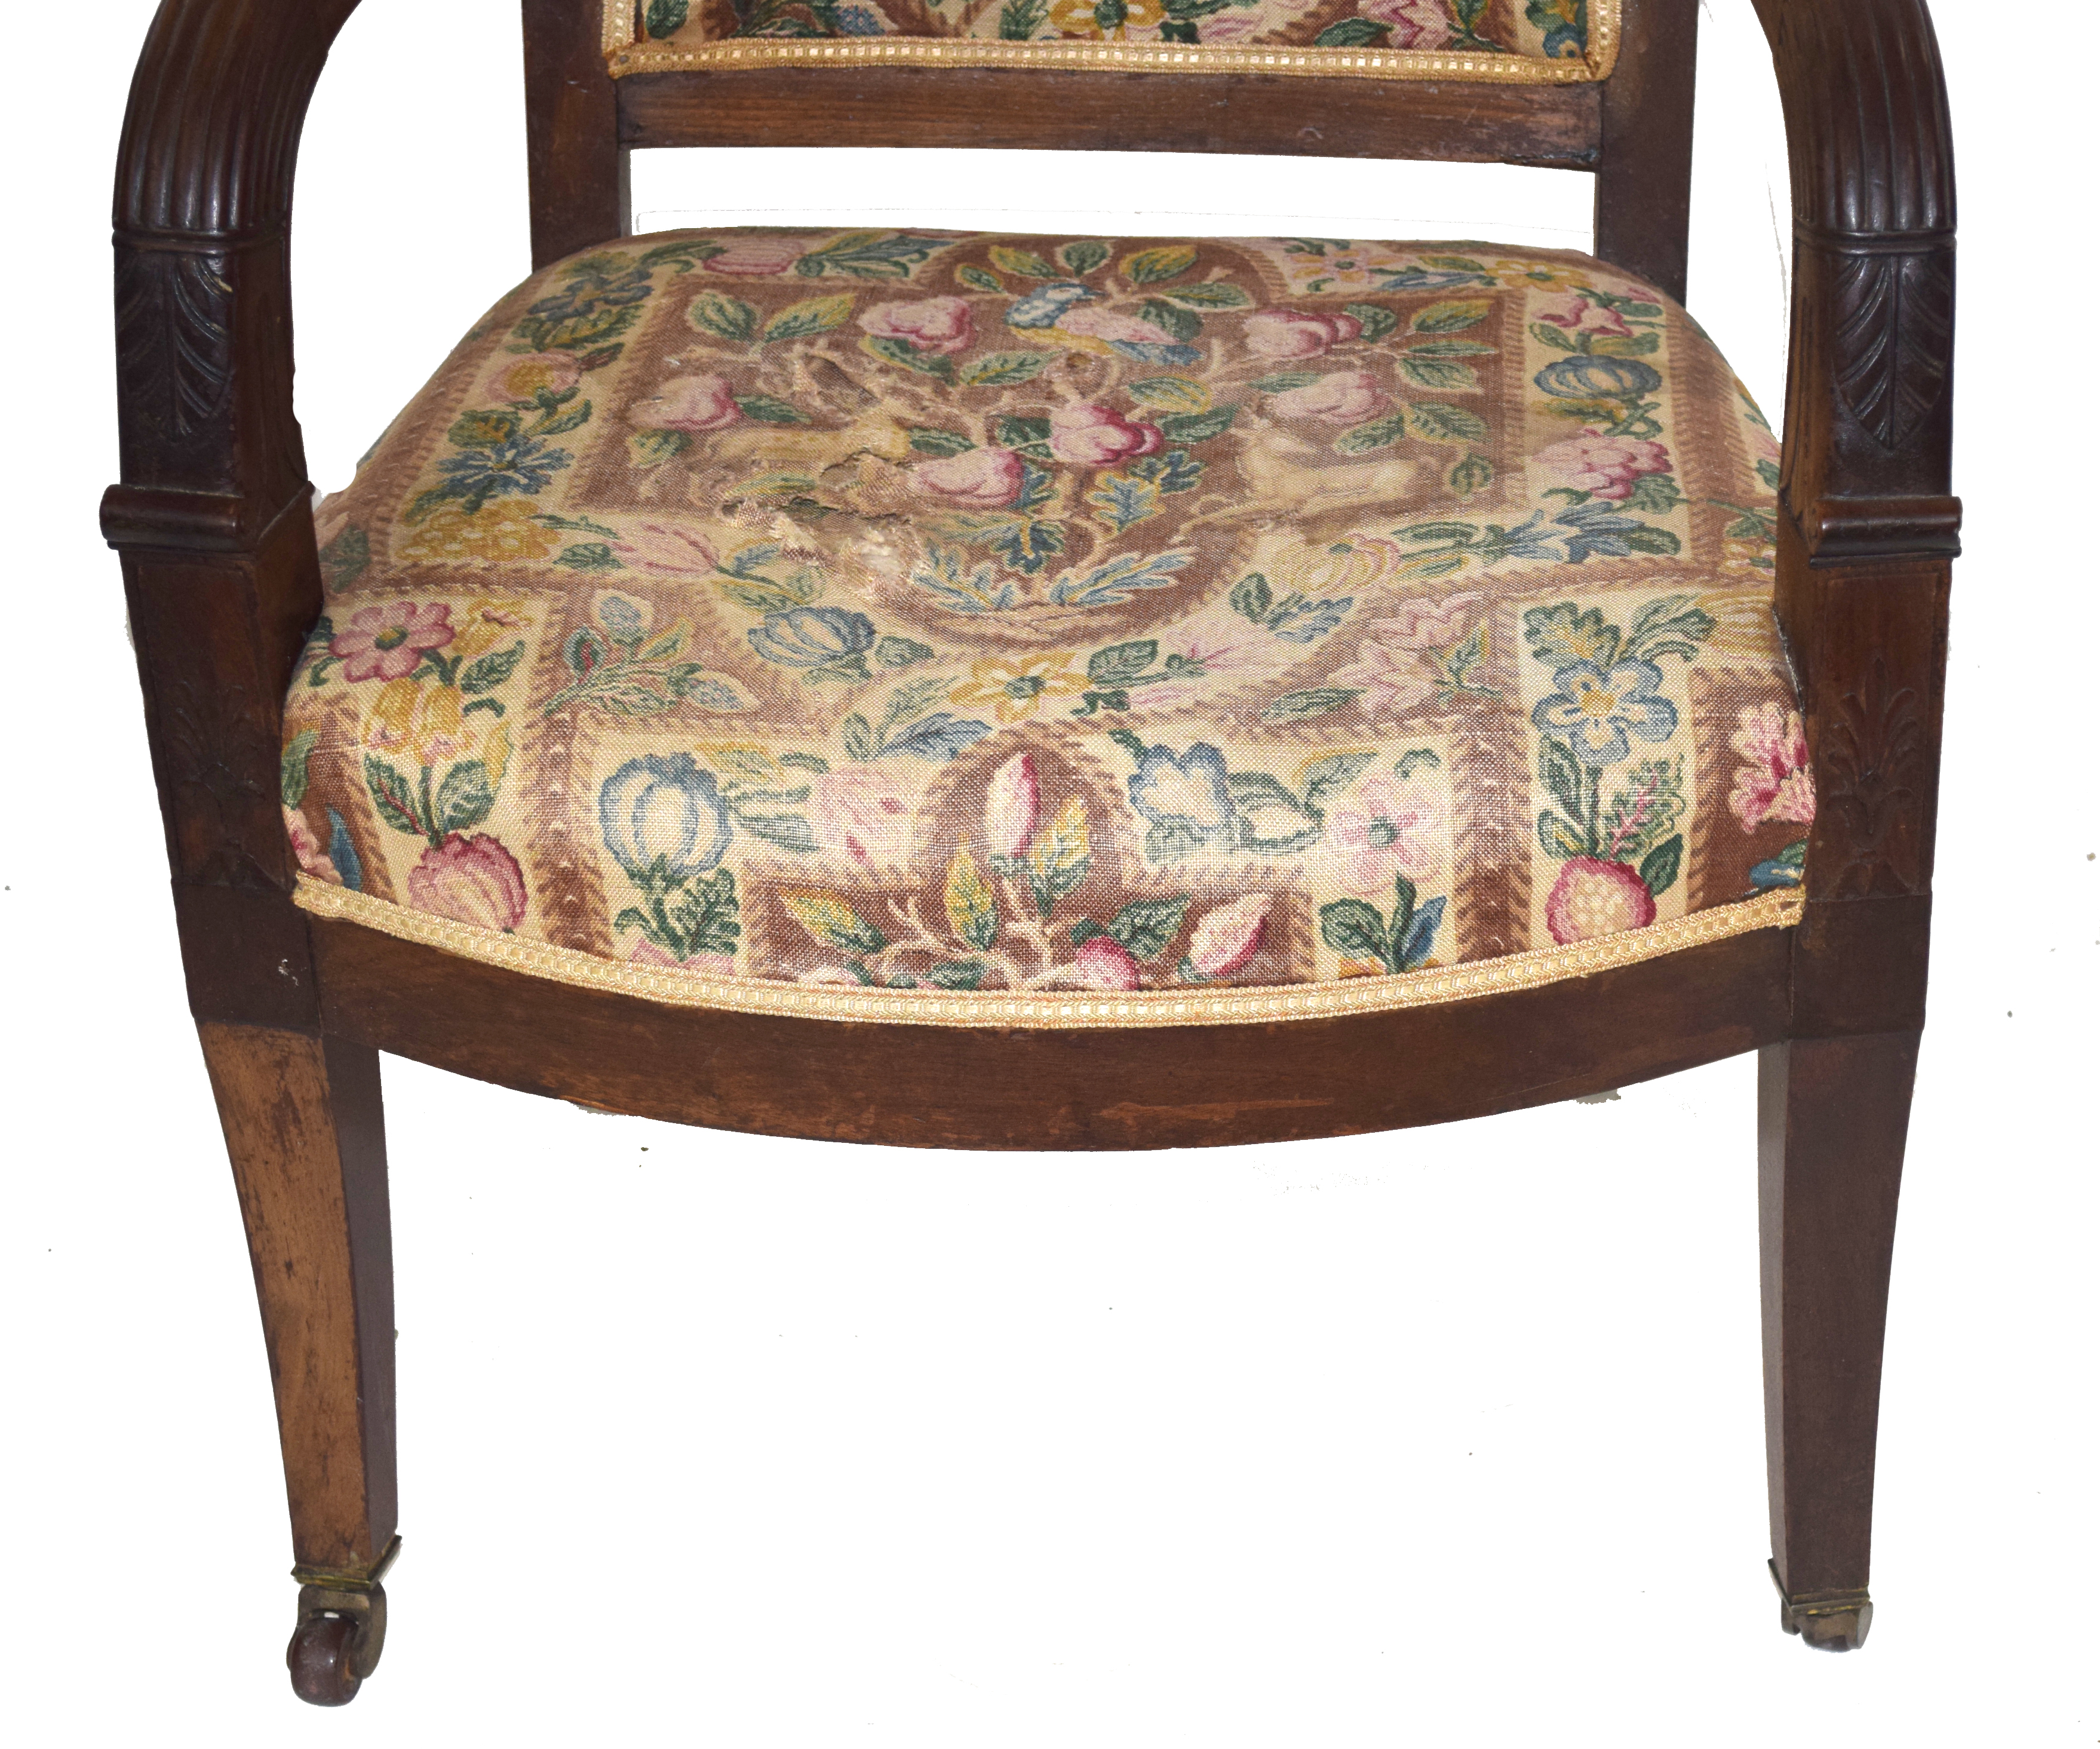 19th century mahogany framed armchair with tapering legs raised on casters, 92cm high Condition: - Image 4 of 4